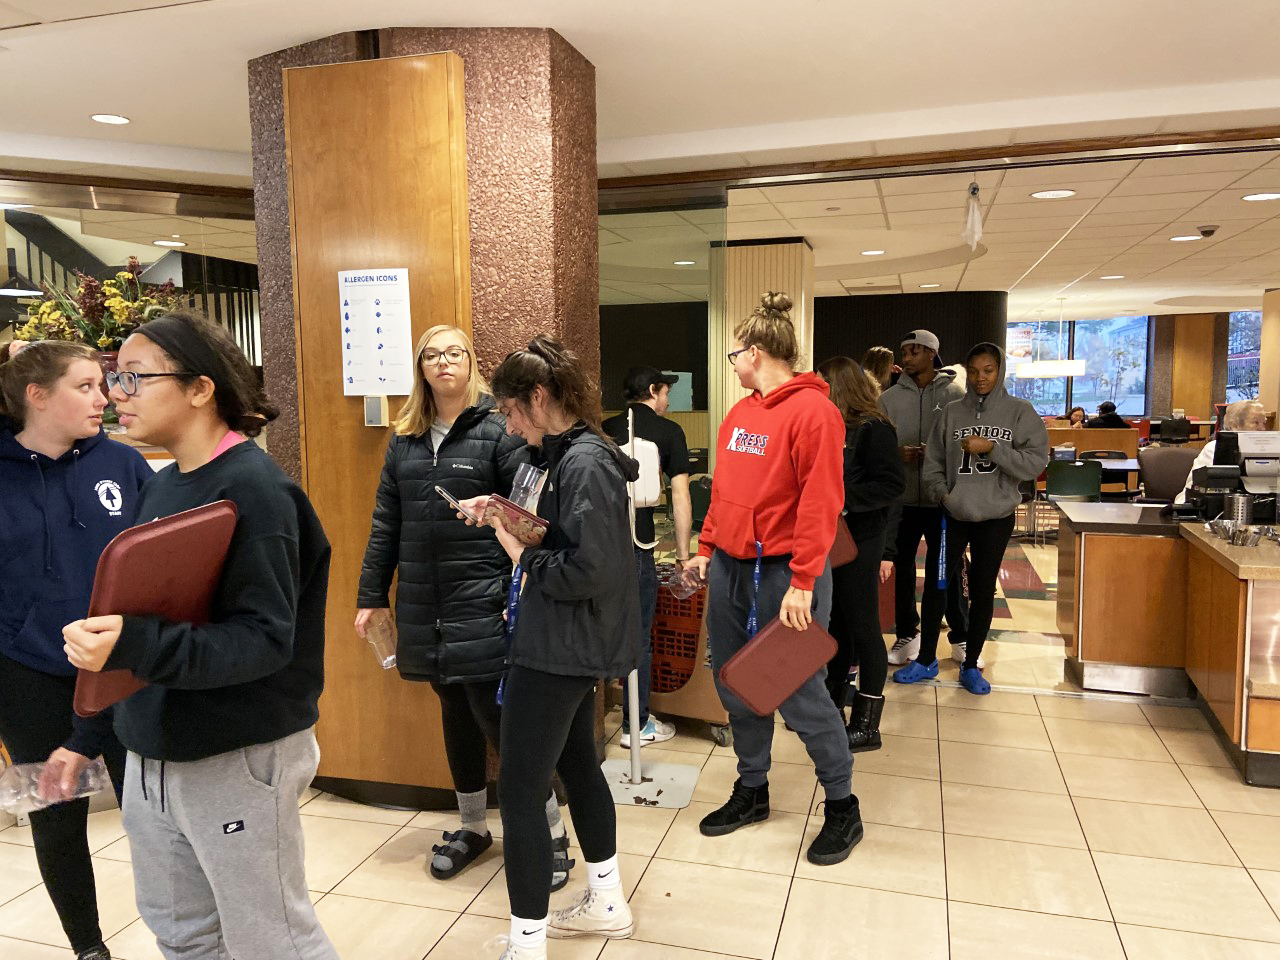 Students lined up for Appetizer Night at Stevenson Grill on Wednesday night. Students were able to fill up their platter with up to four appetizers such as boneless wings, jalapeno poppers and mozzarella cheese sticks.